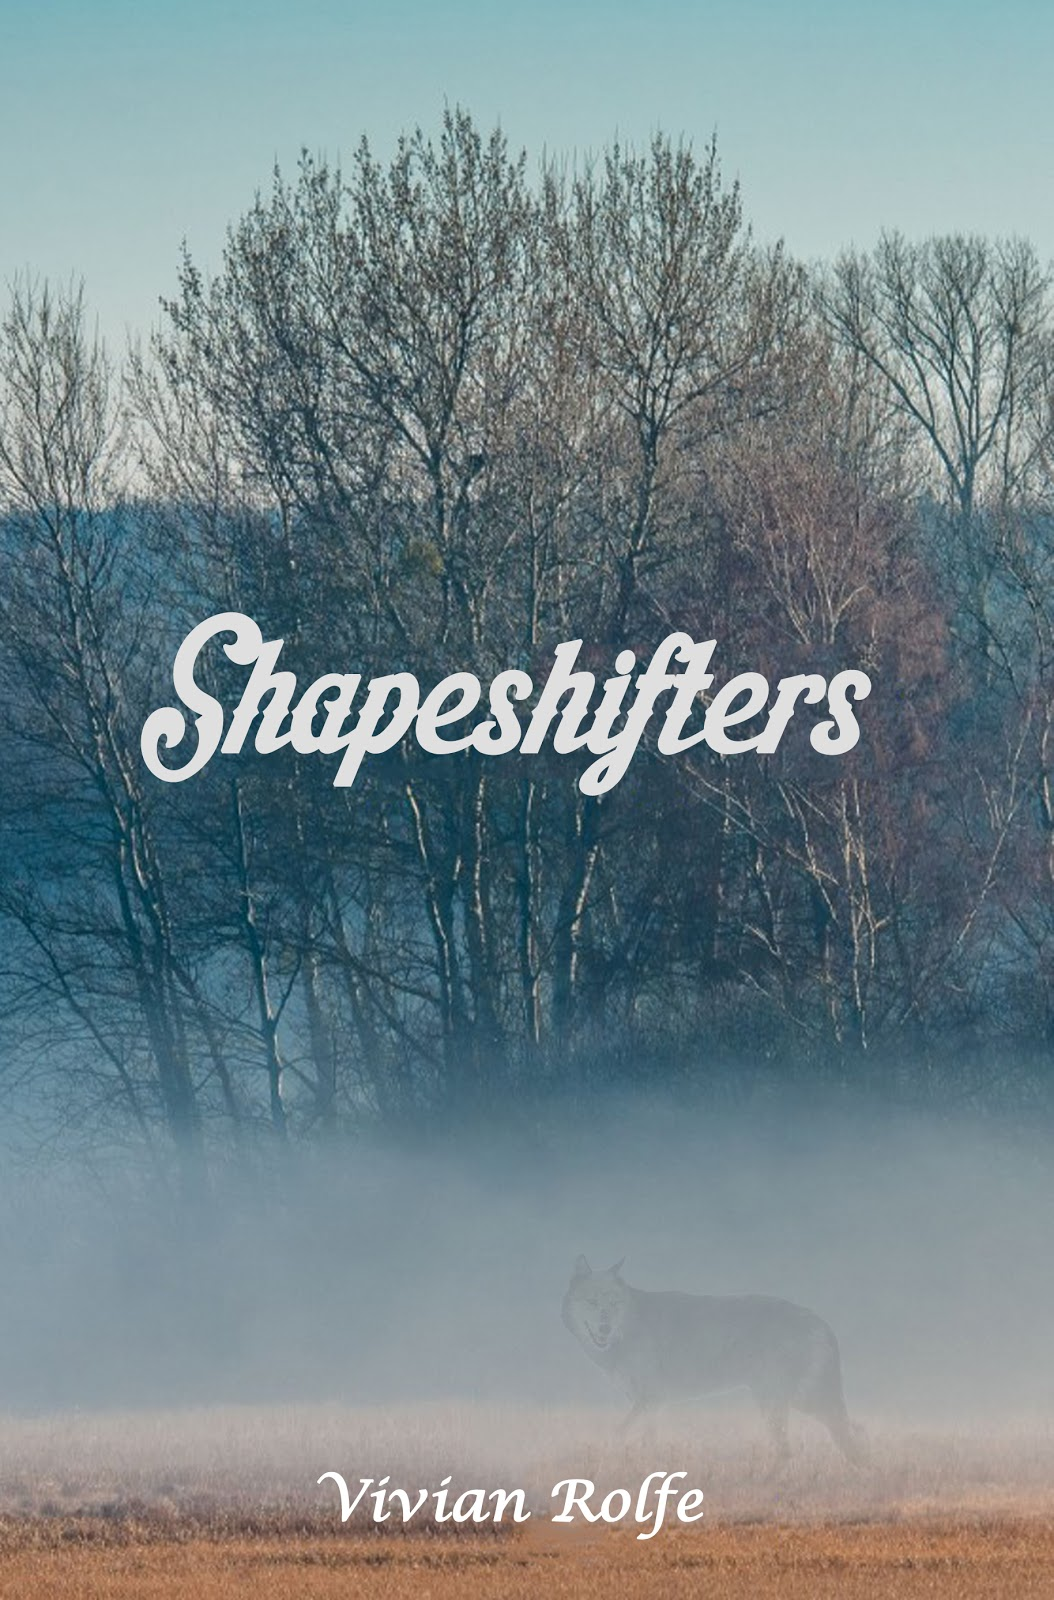 Shapeshifters by Vivian Rolfe